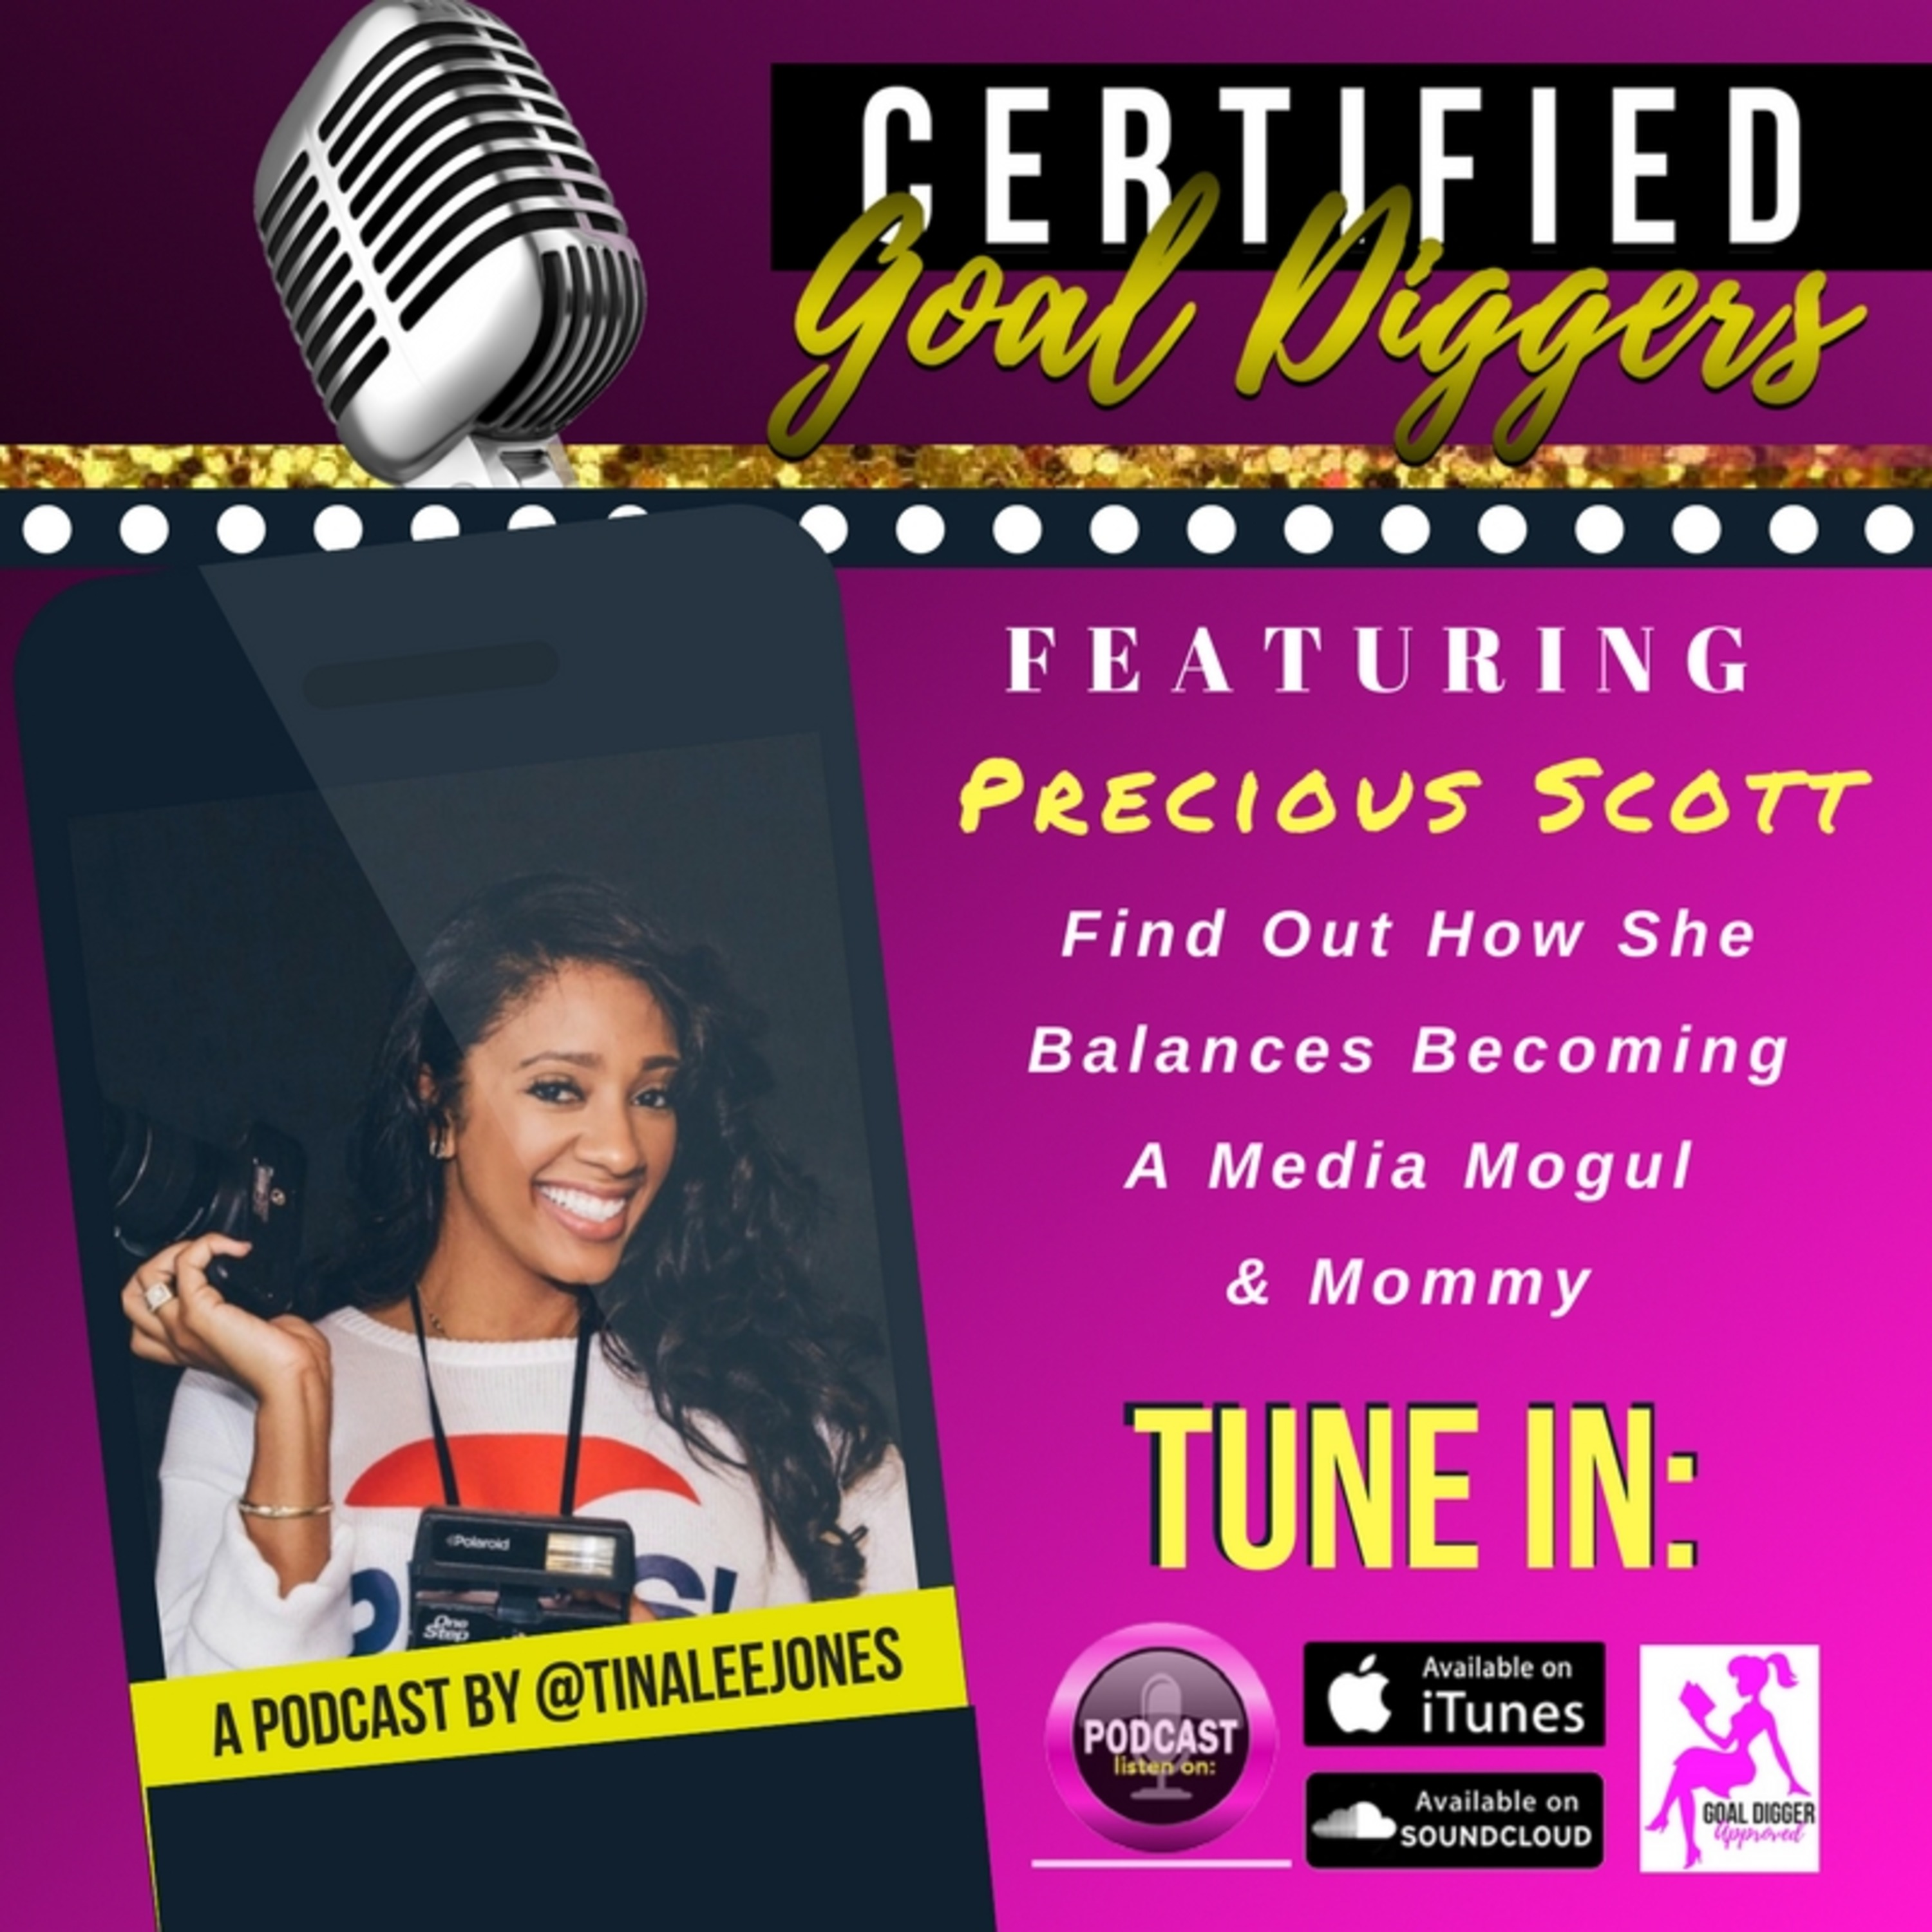 22: Precious Scott - Find Out How She Balances Becoming A Media Mogul & Mommy